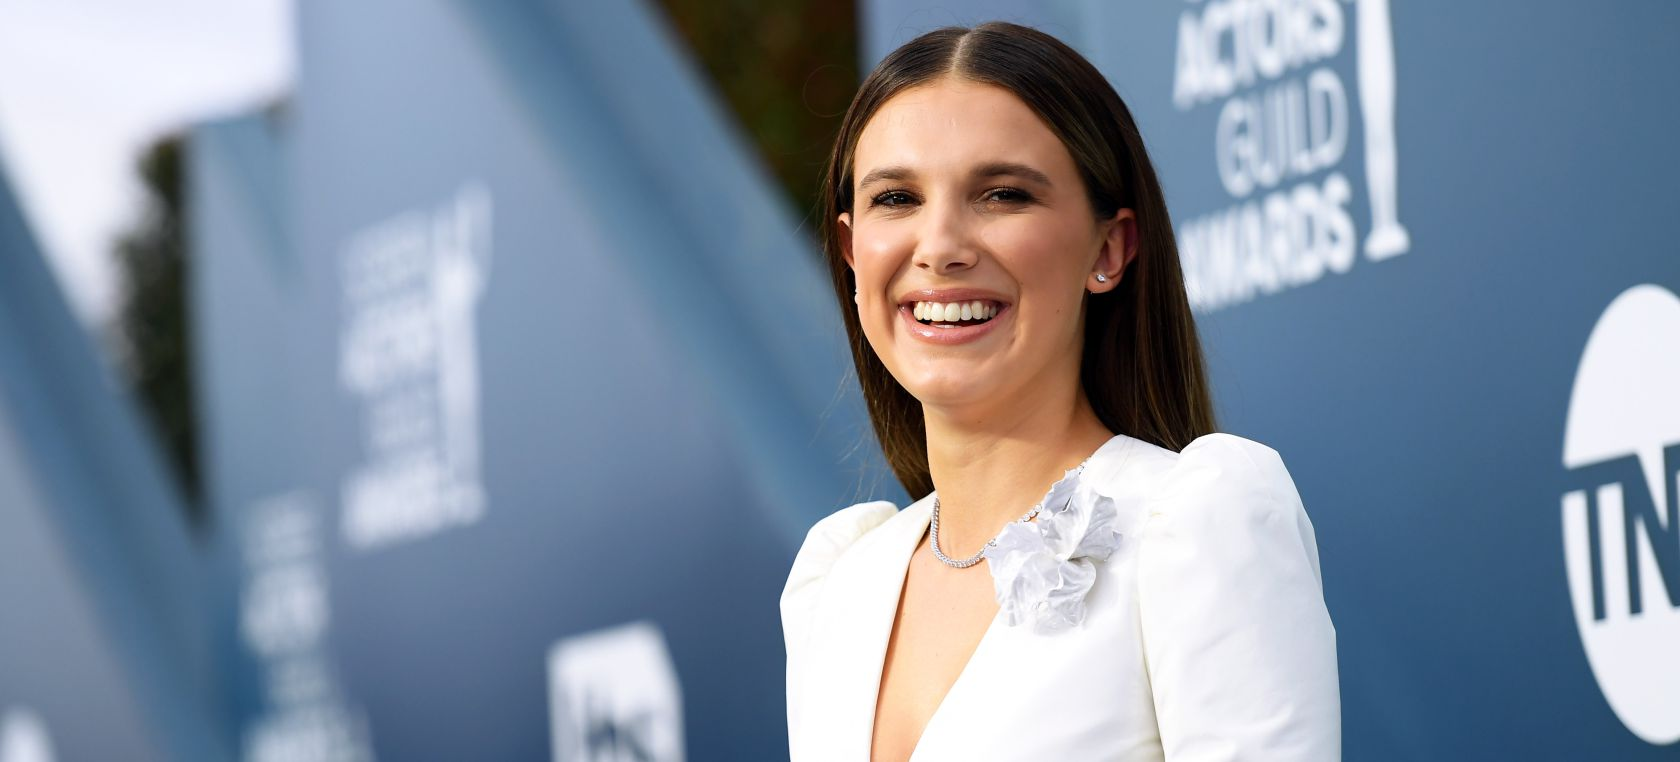 Millie Bobby Brown es la perfecta Hermione Granger: ¿Tendría futuro en 'Harry Potter'?